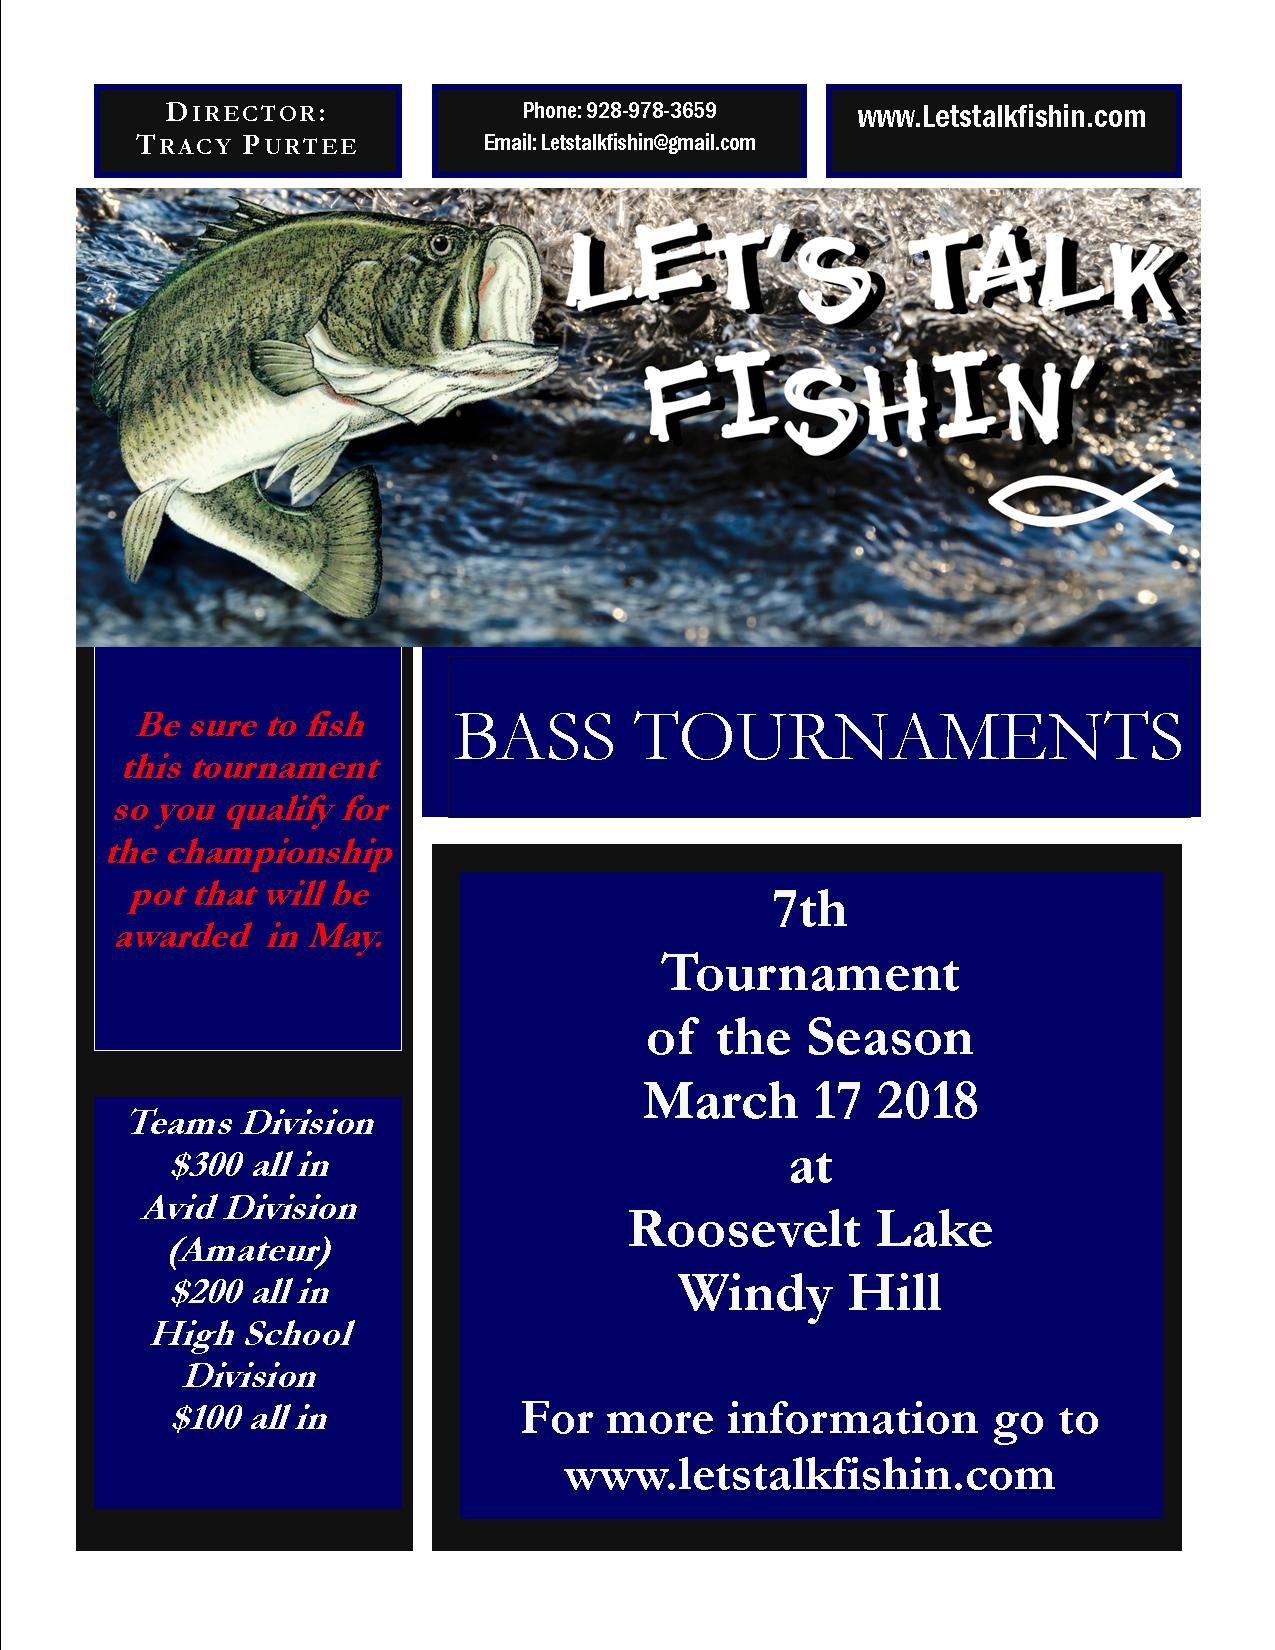 Click image for larger version  Name:7th Tournament.jpg Views:1642 Size:283.6 KB ID:96826